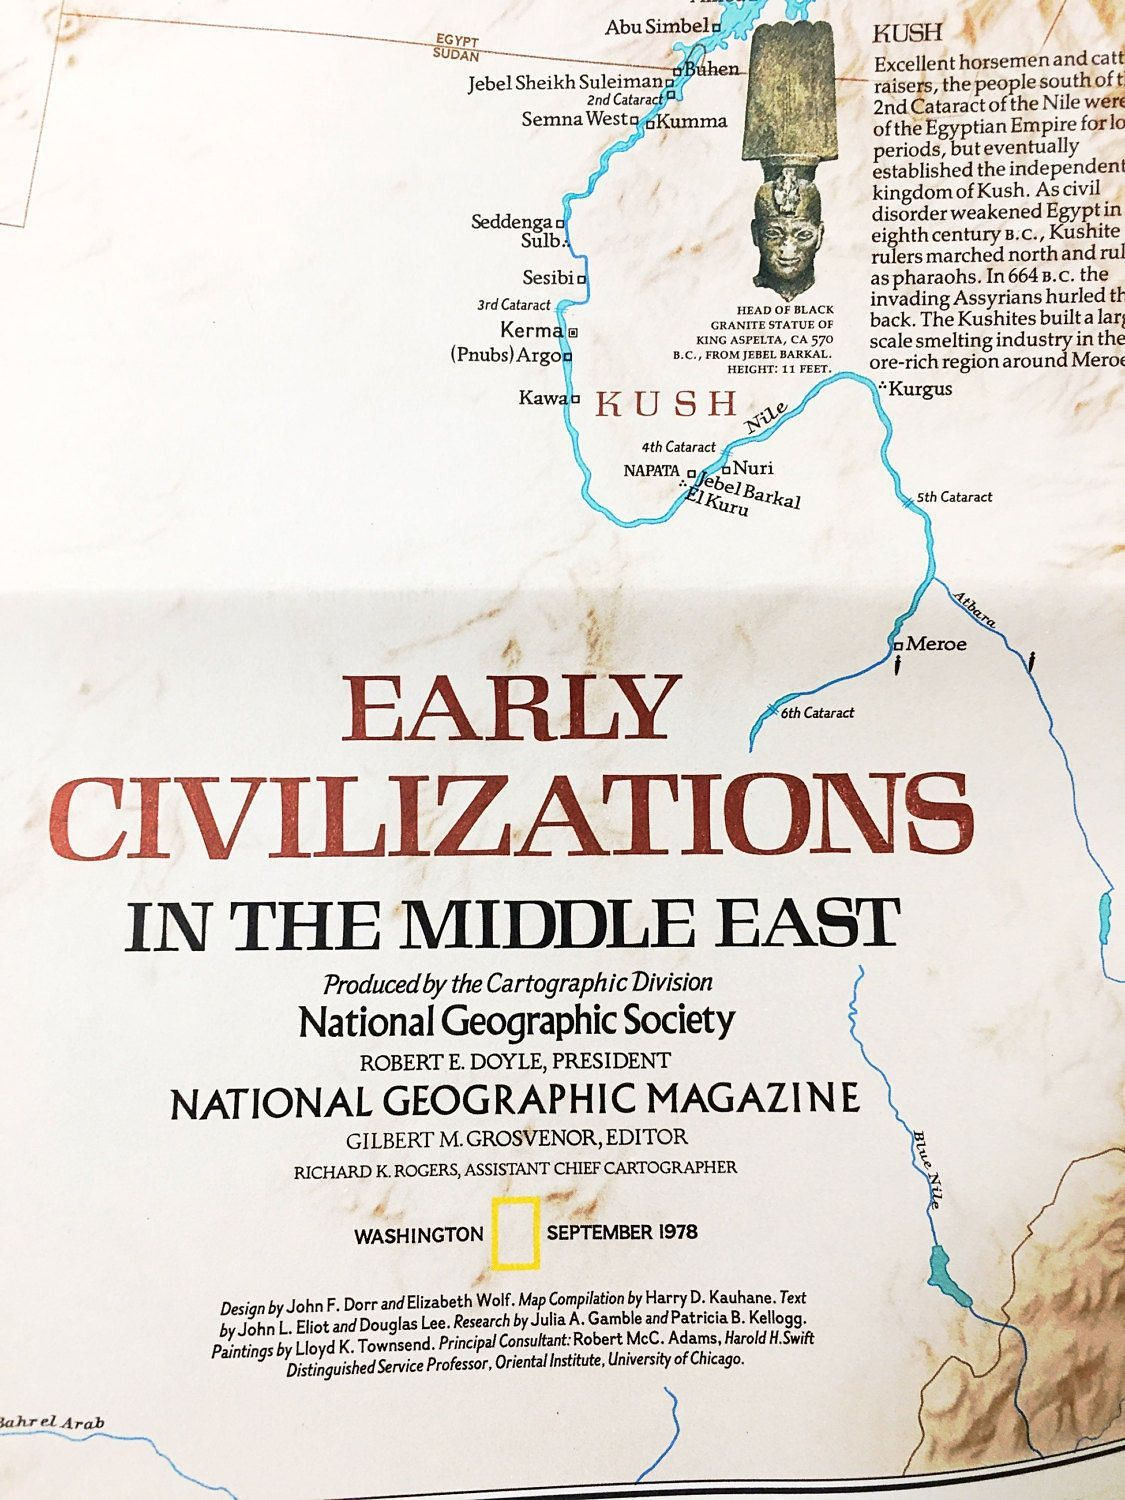 Middle east map and early civilizations national geographic vintage middle east map and early civilizations national geographic vintage map vintage world map large 1978 israel egypt jewish gumiabroncs Choice Image